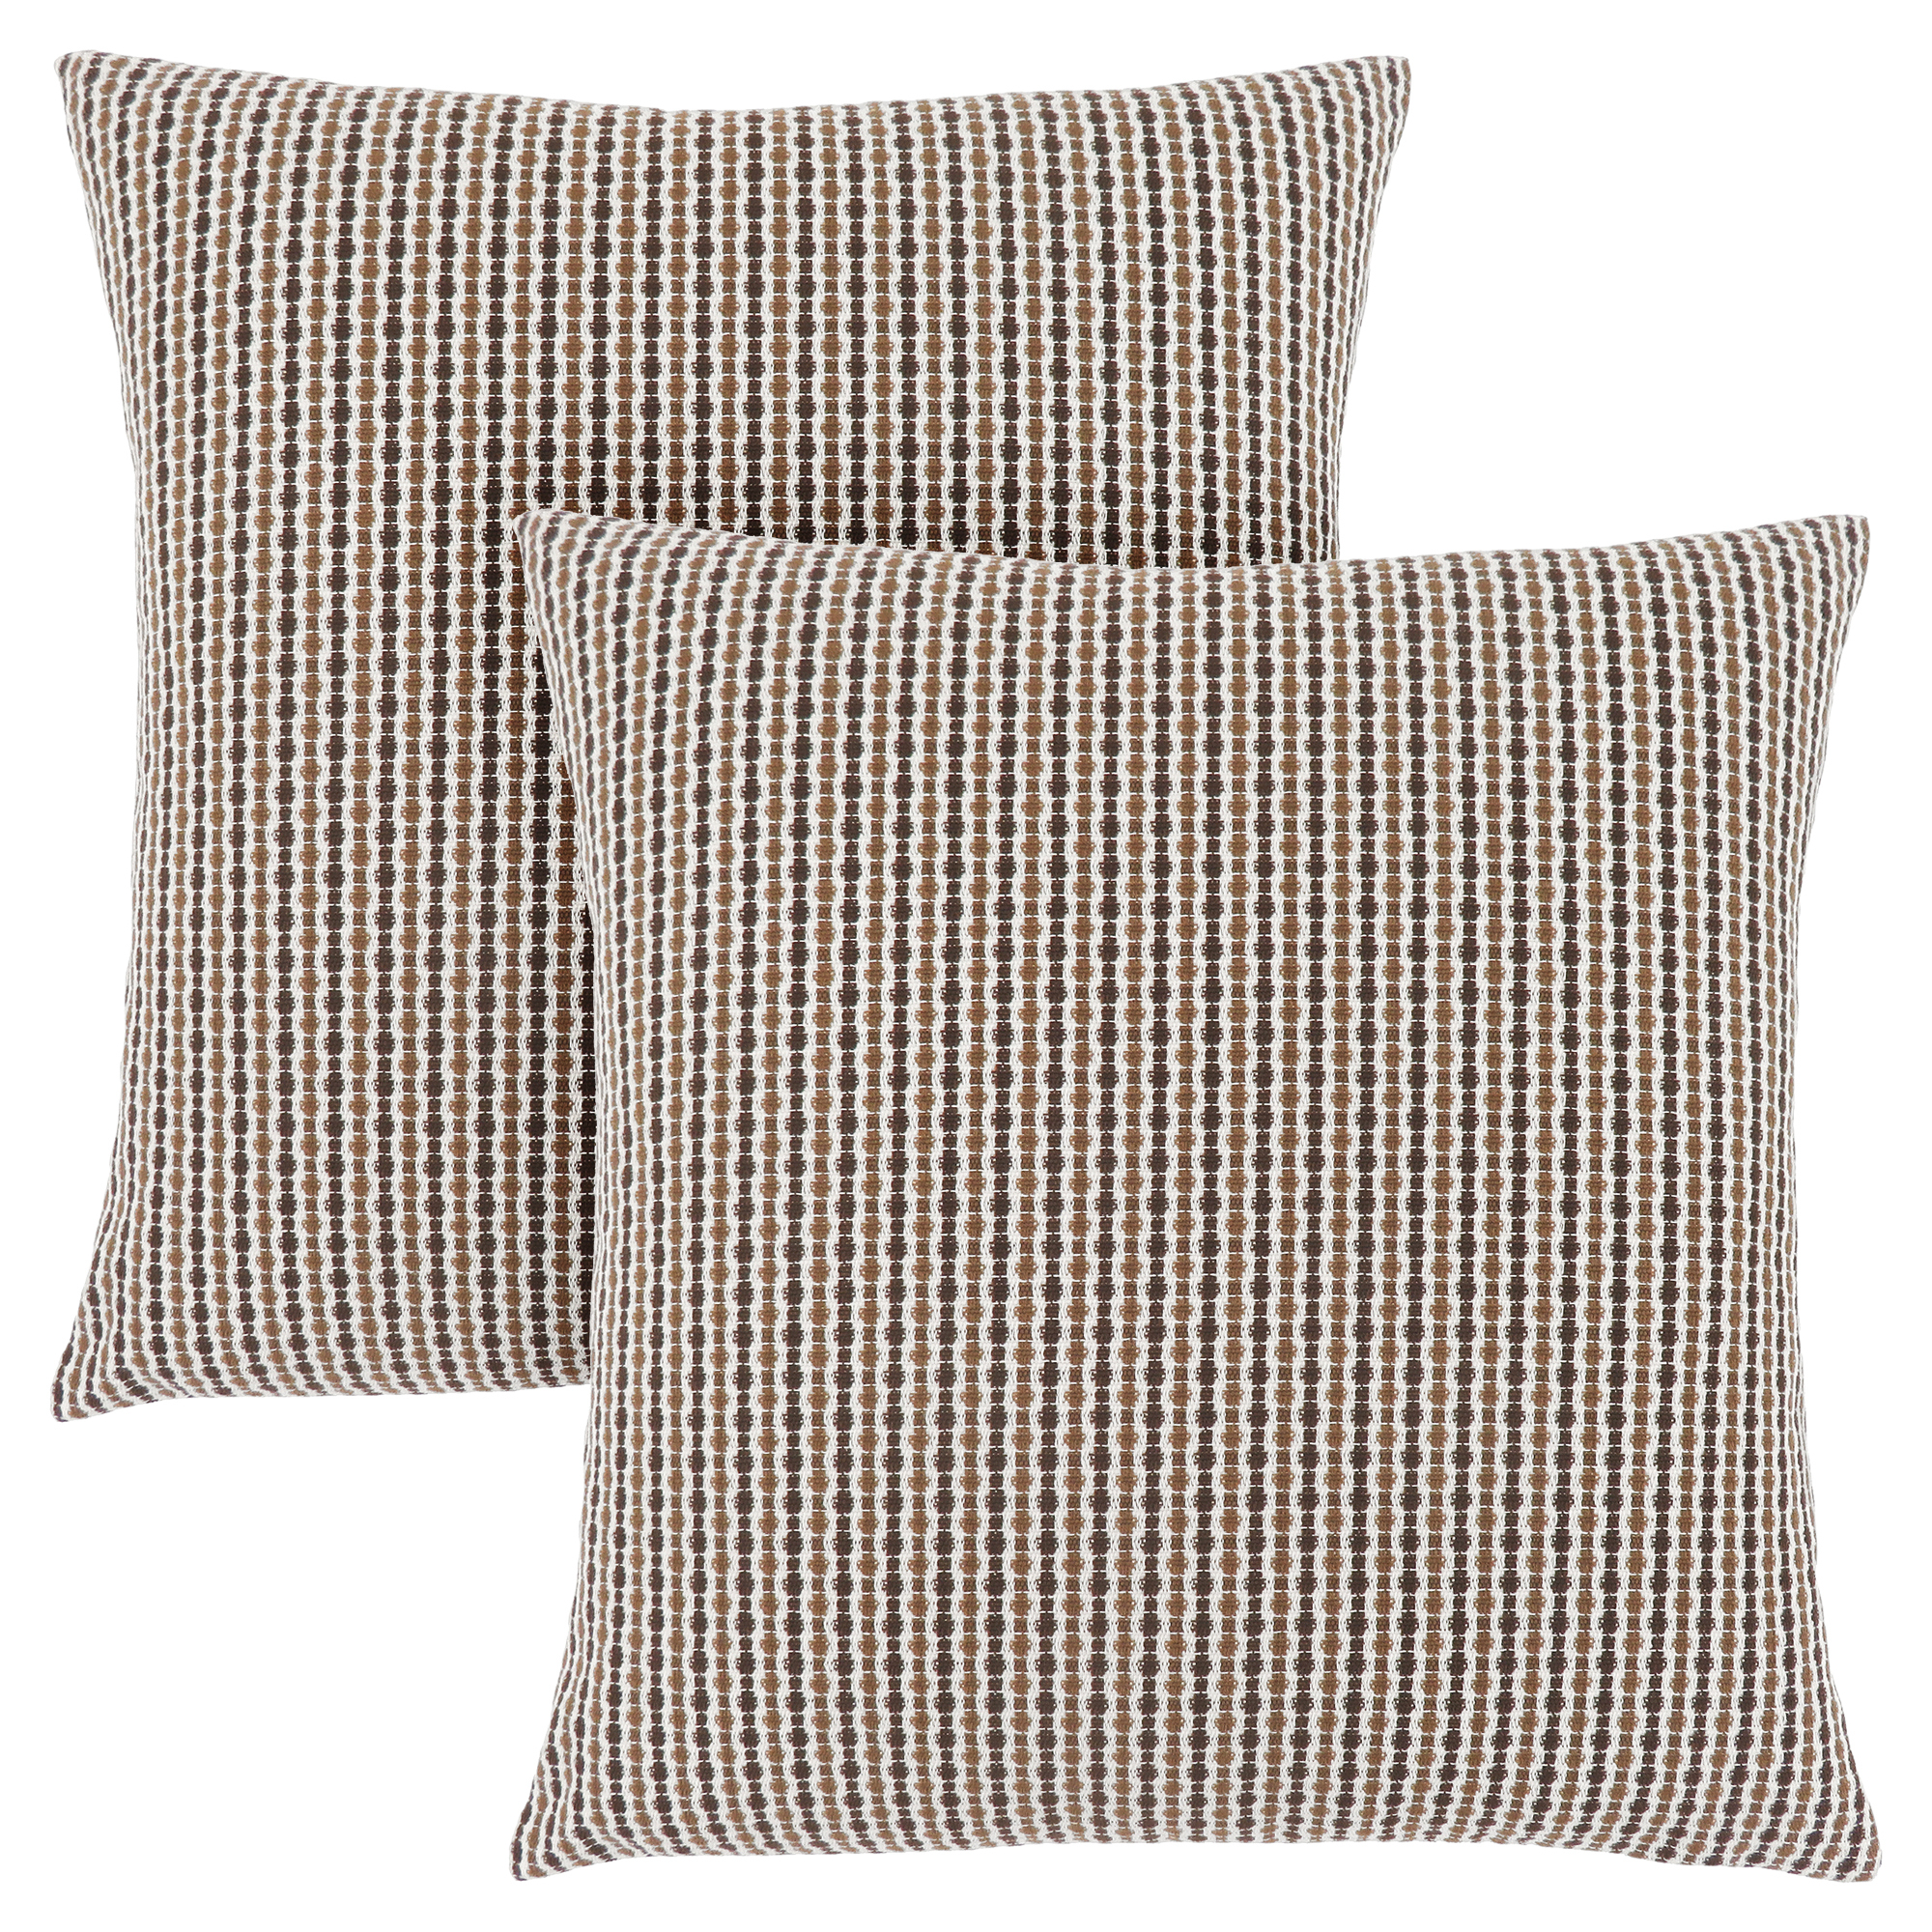 "PILLOW - 18""X 18"" / LIGHT / DARK BROWN ABSTRACT DOT / 2PC"